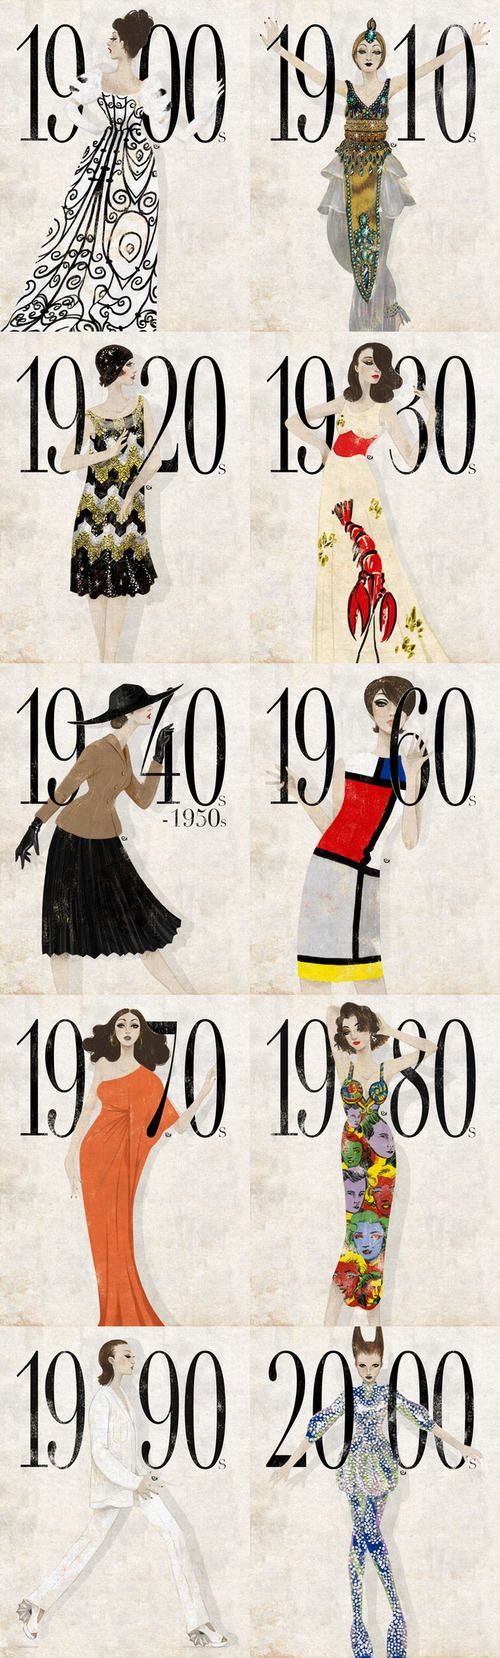 Fashion fades,style remains